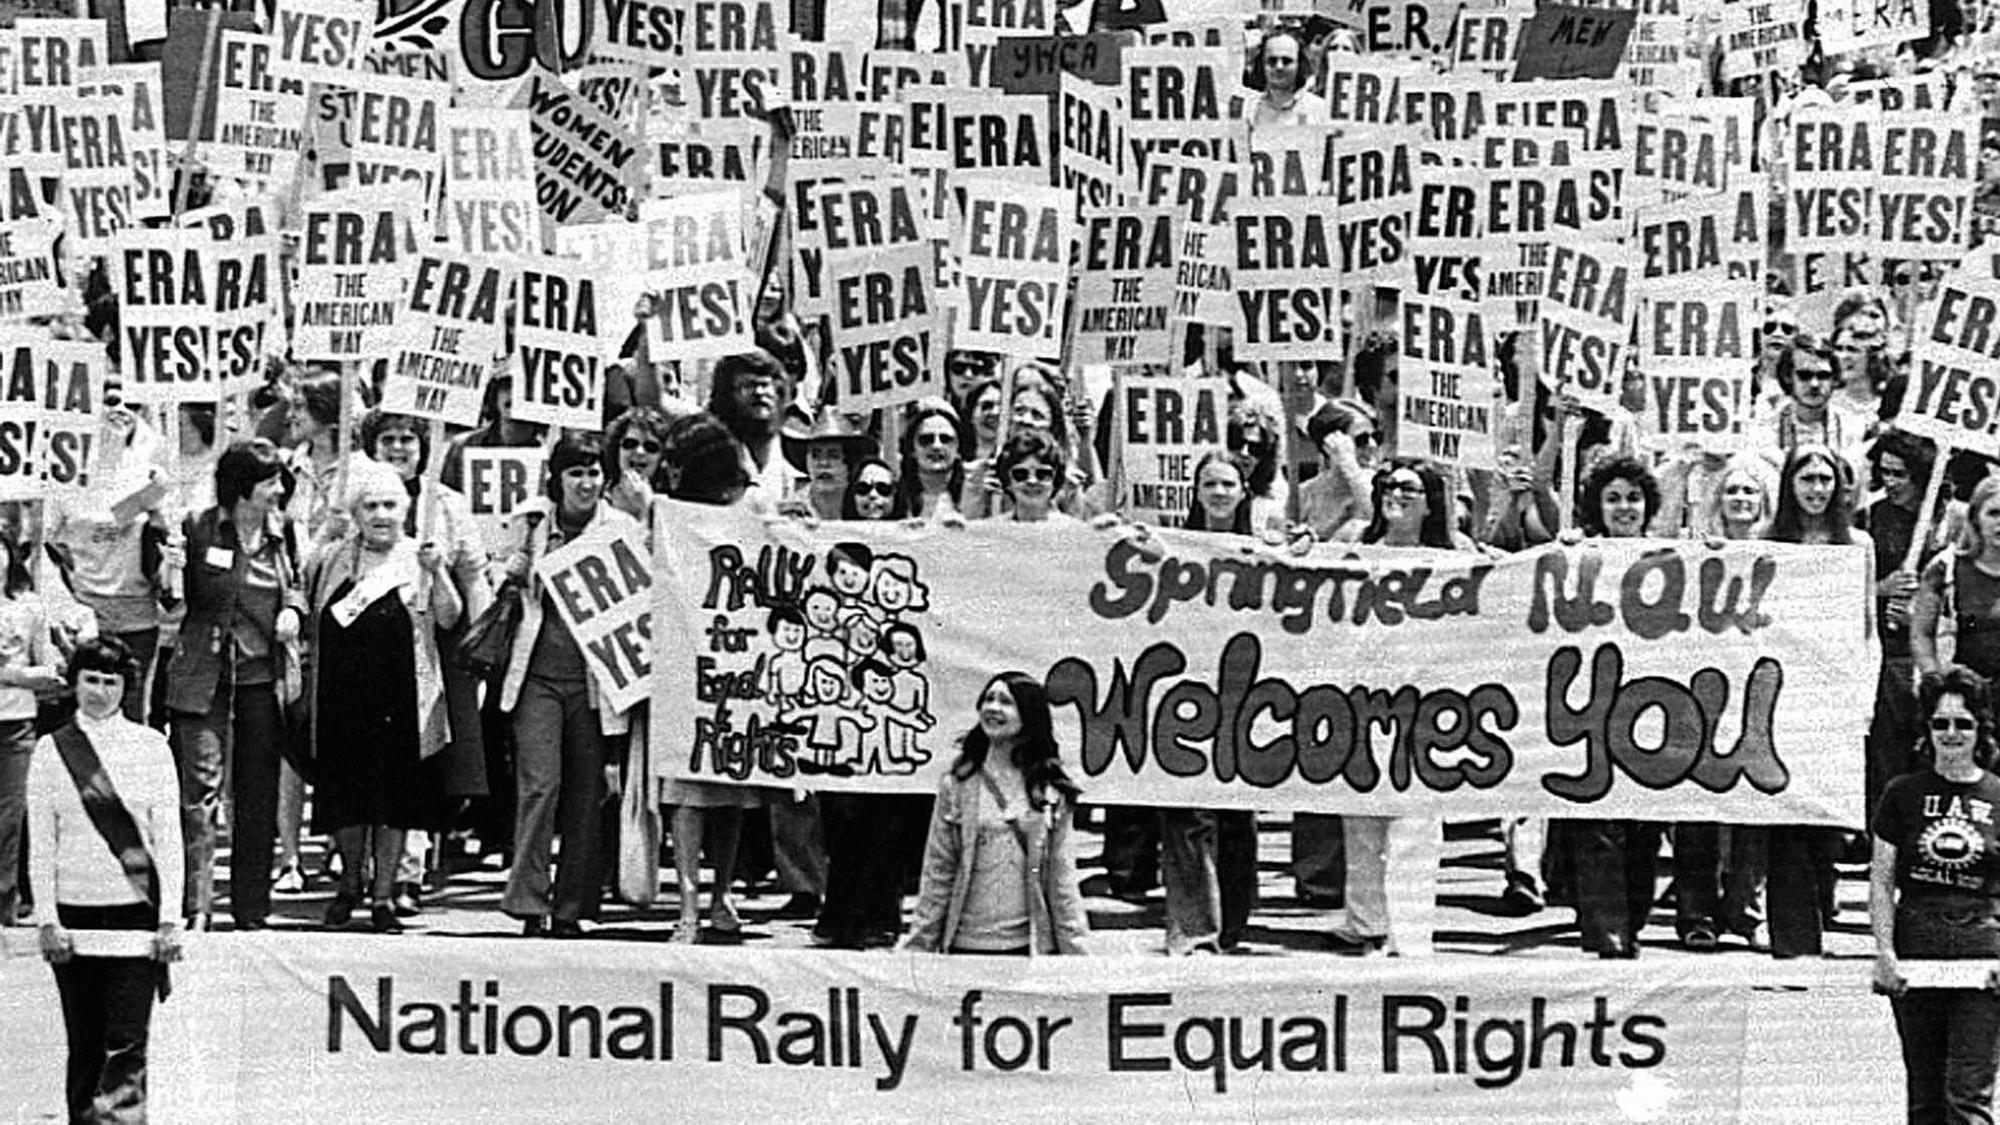 Illinois should ratify the Equal Rights Amendment ...